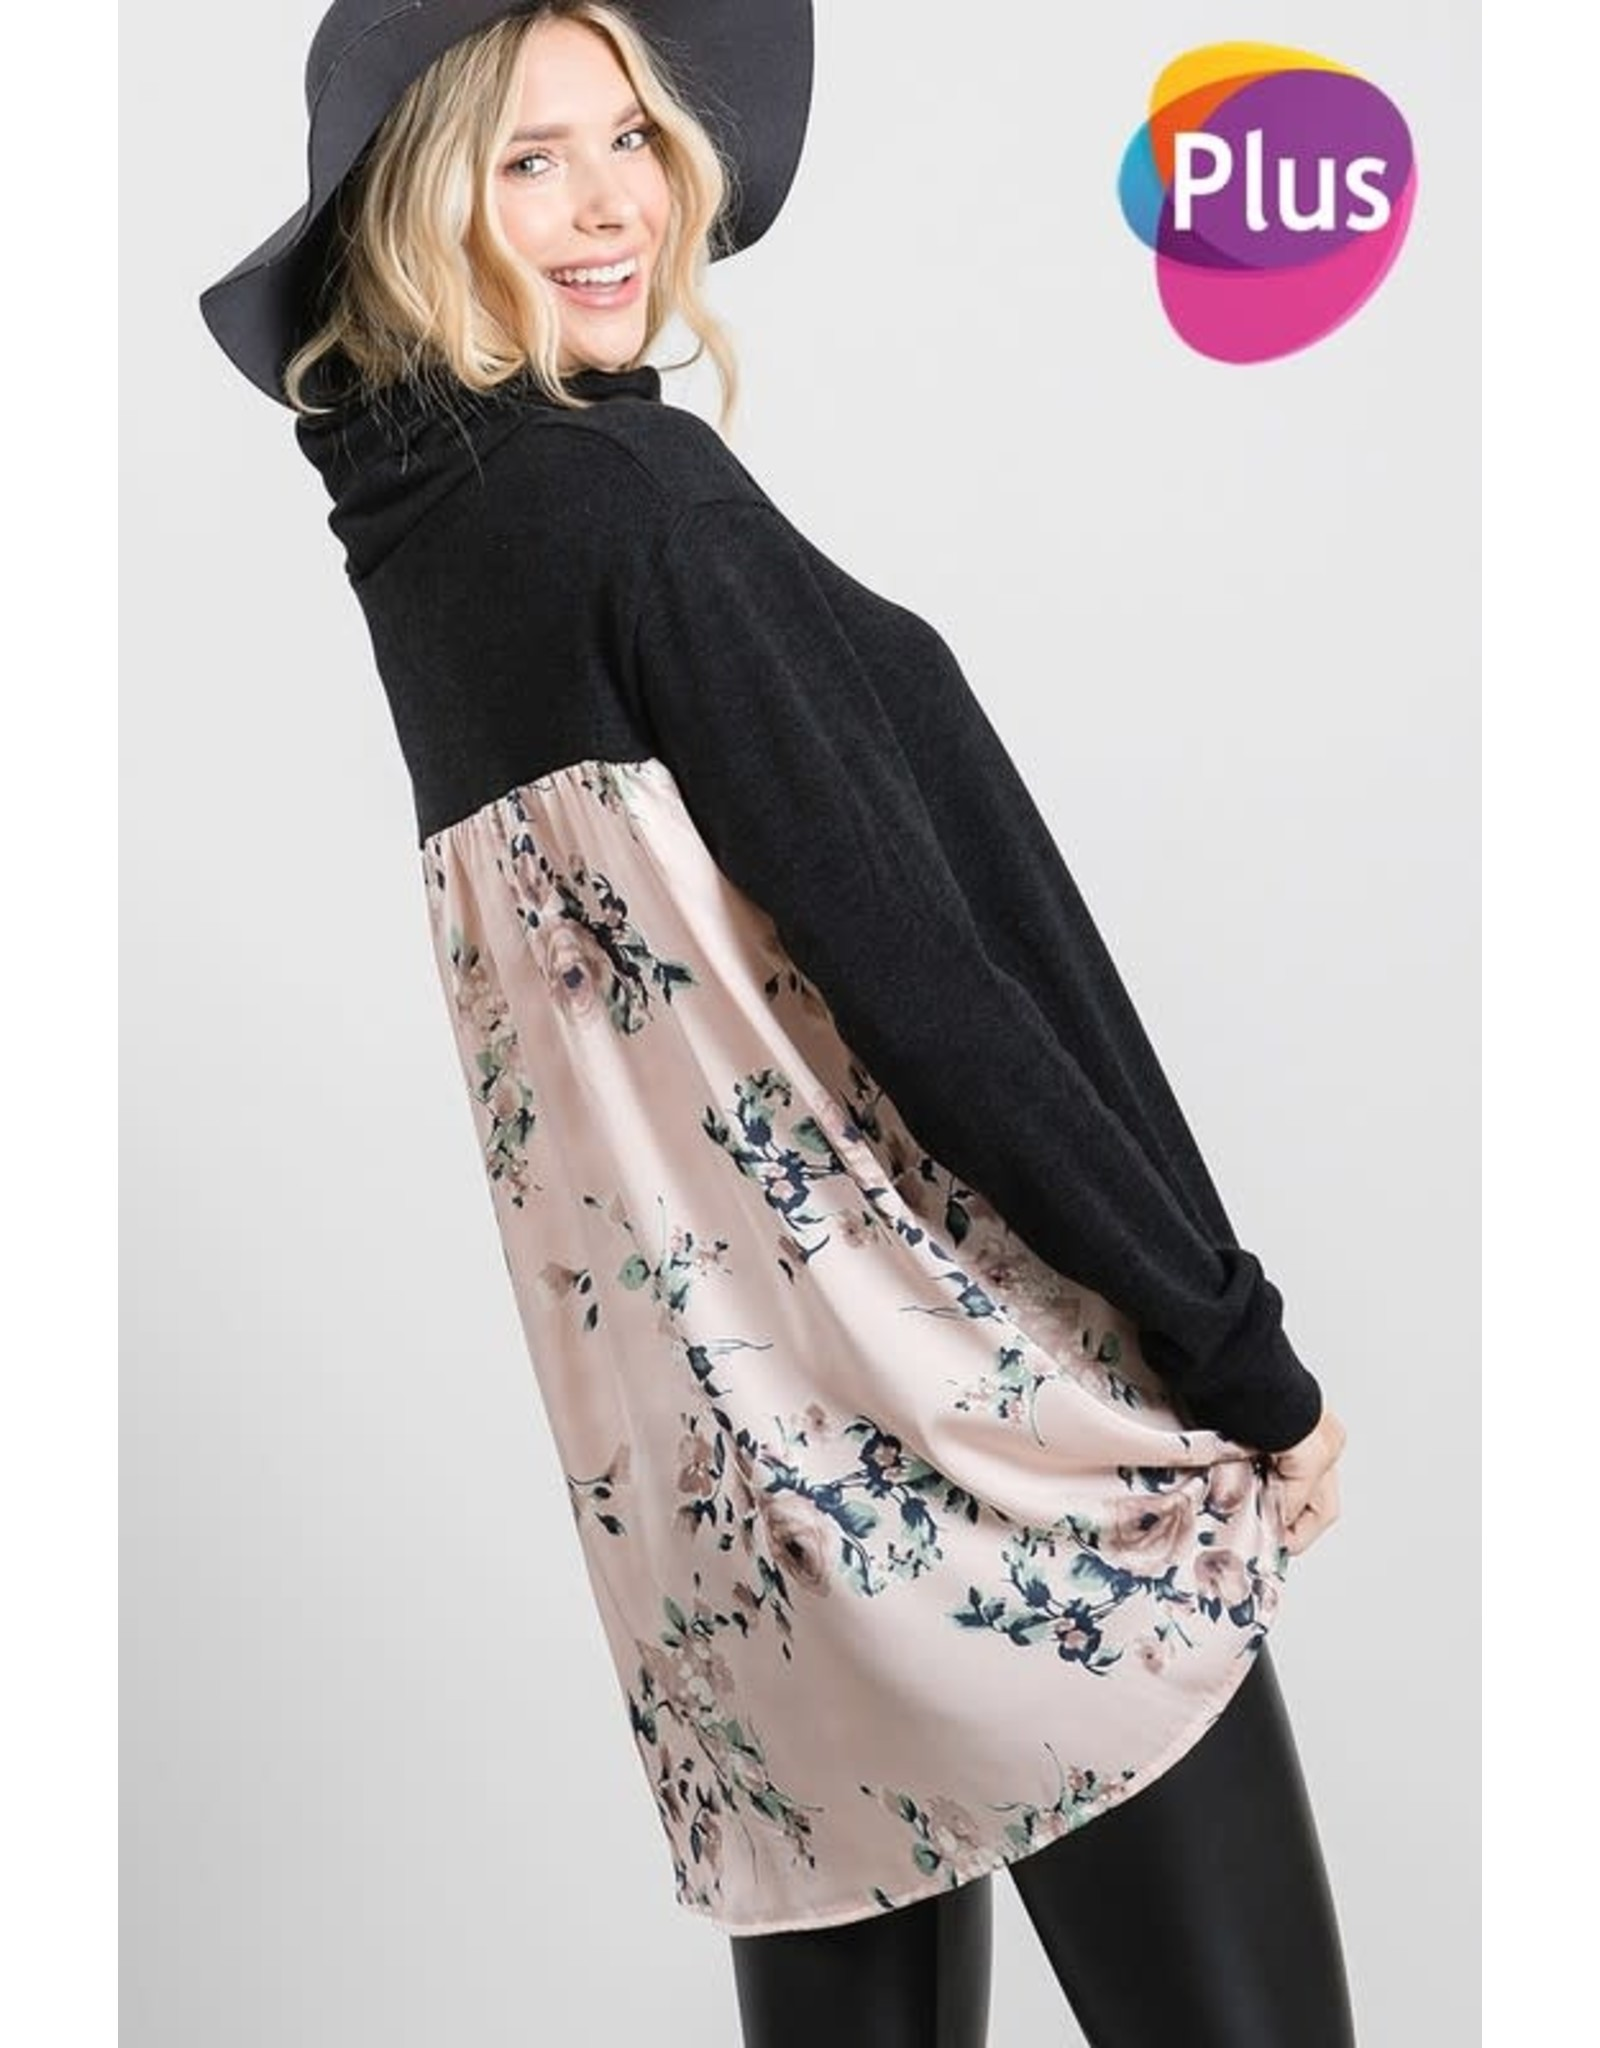 GEEGEE BLACK SOLID TURTLE NECK WITH FLORAL BACK PANEL